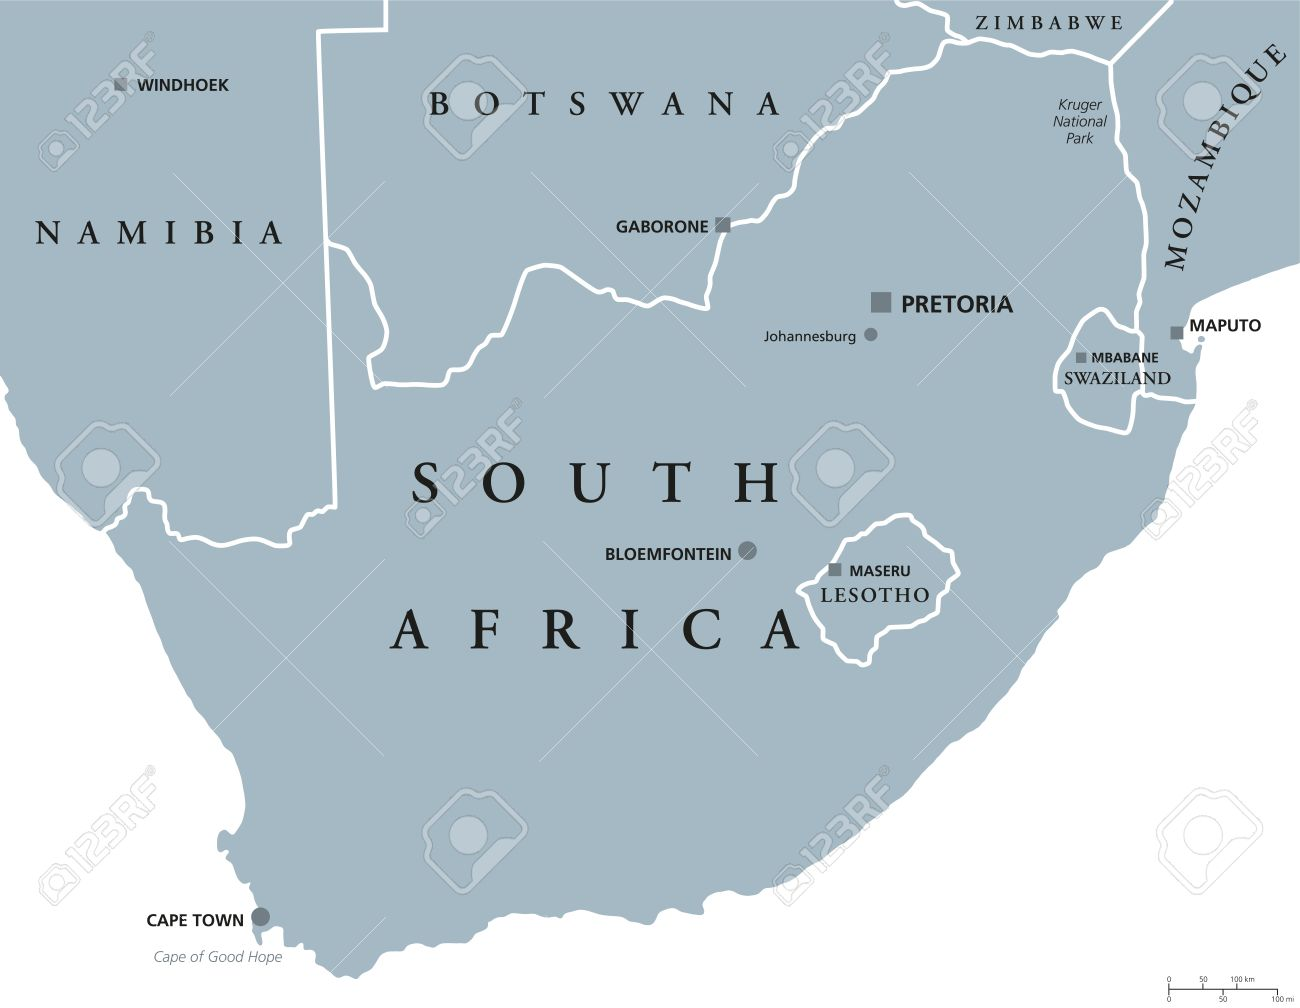 South Africa Political Map With The Capitals Pretoria, Bloemfontein ...